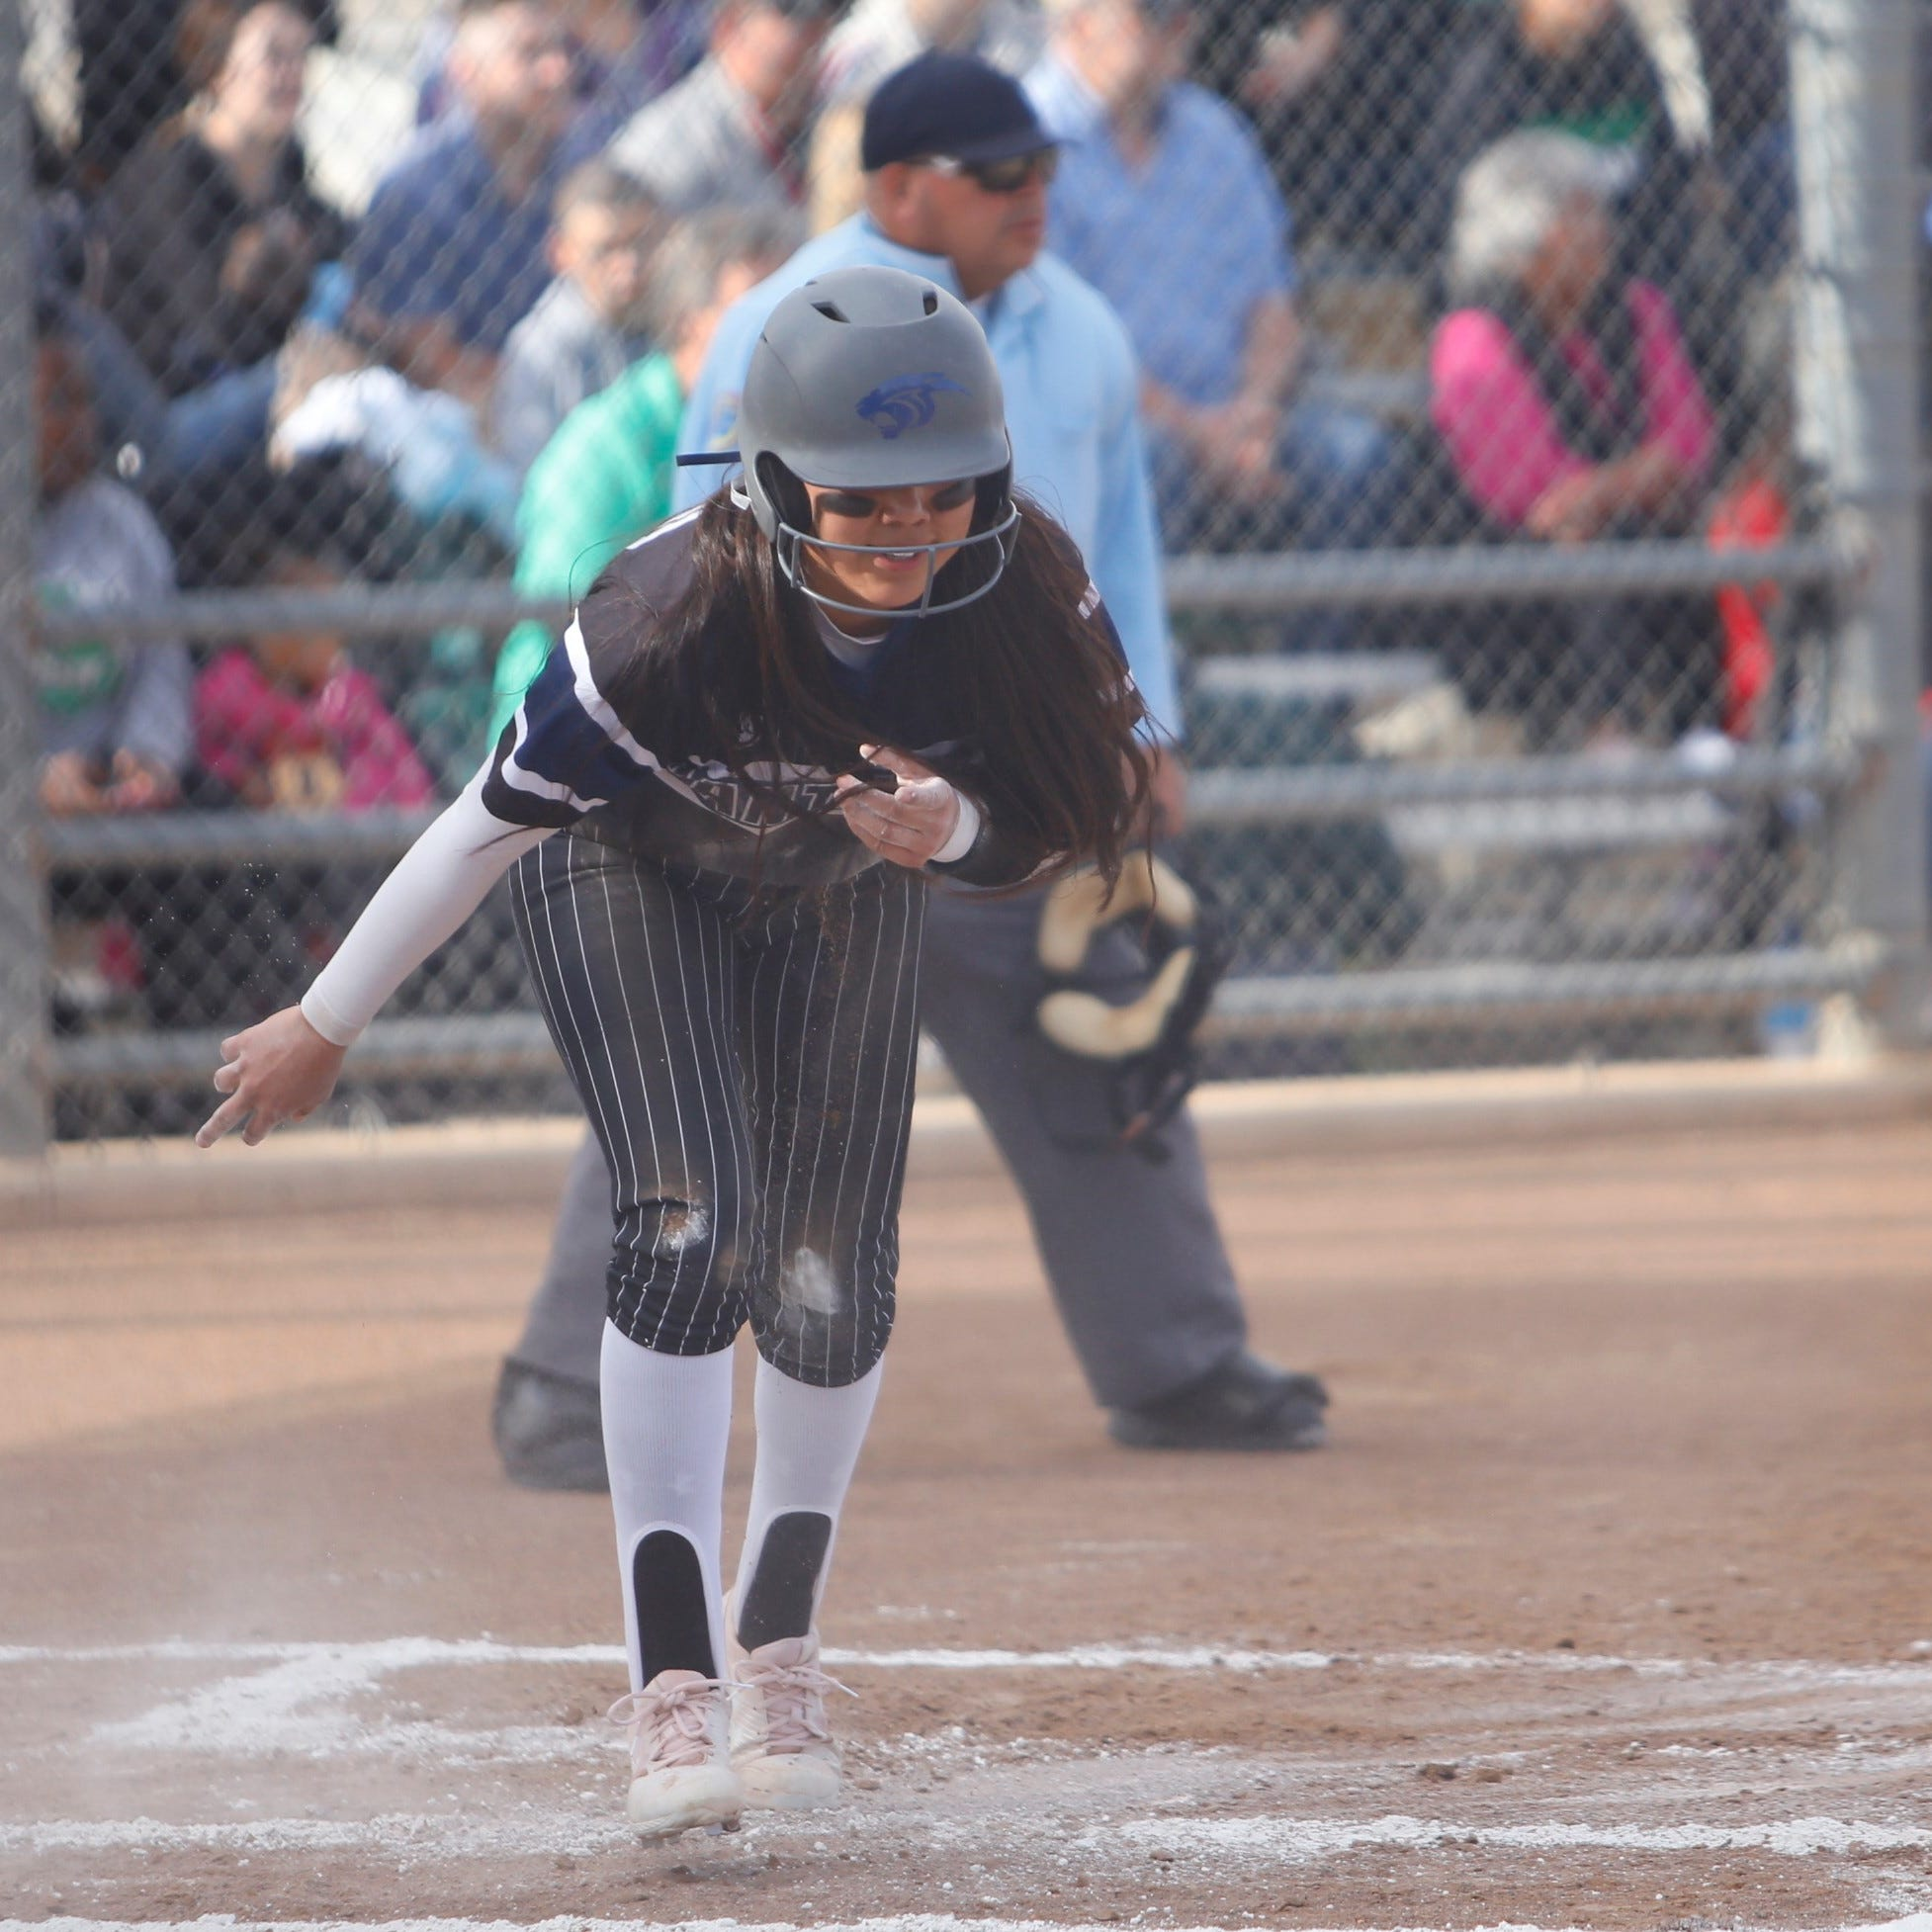 PV sweeps Farmington in district softball doubleheader